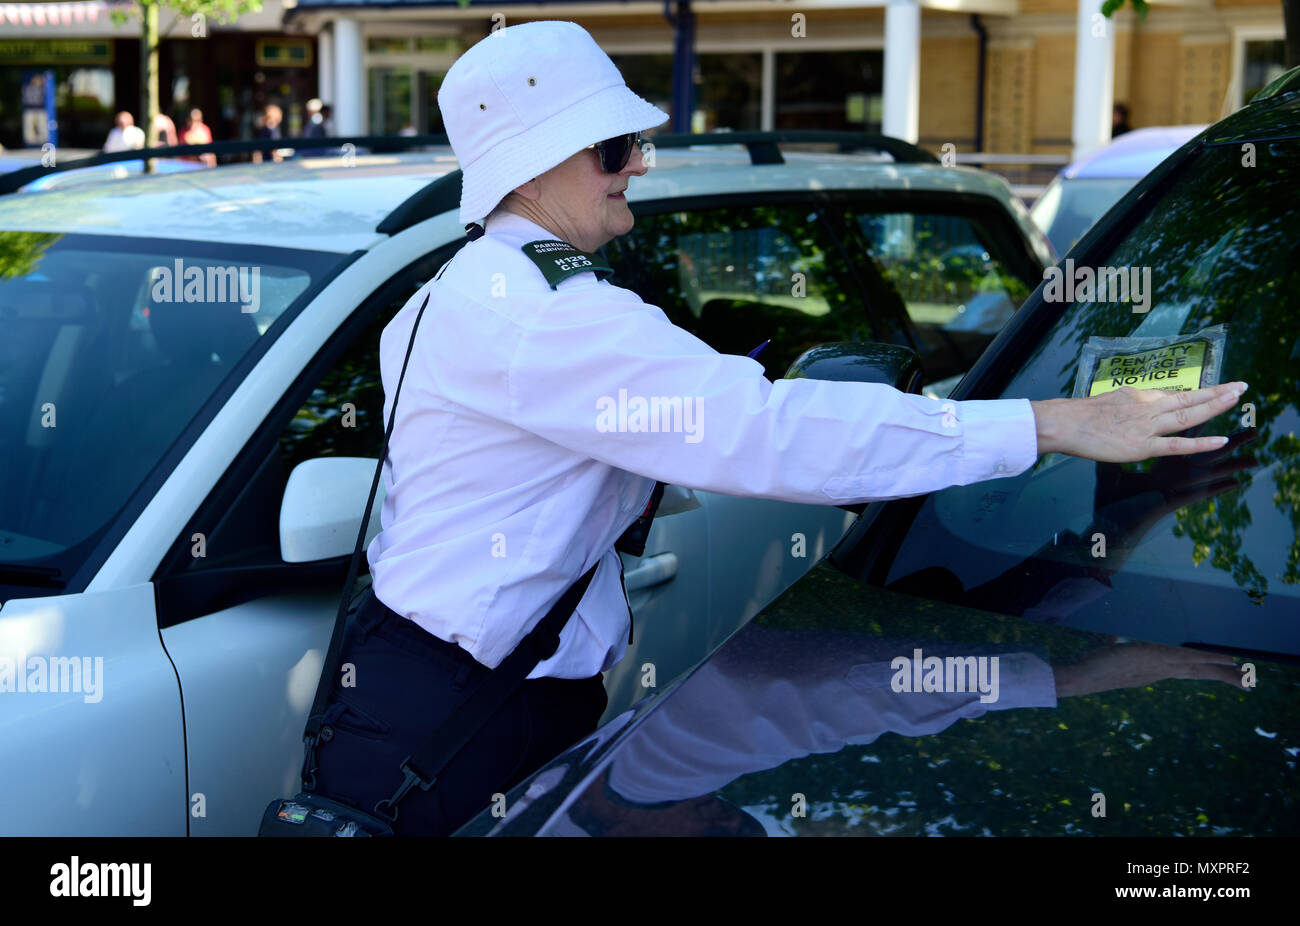 Car park enforcement officer placing Penalty Charge Notice on motorists car, Petersfield, Hampshire, UK. - Stock Image